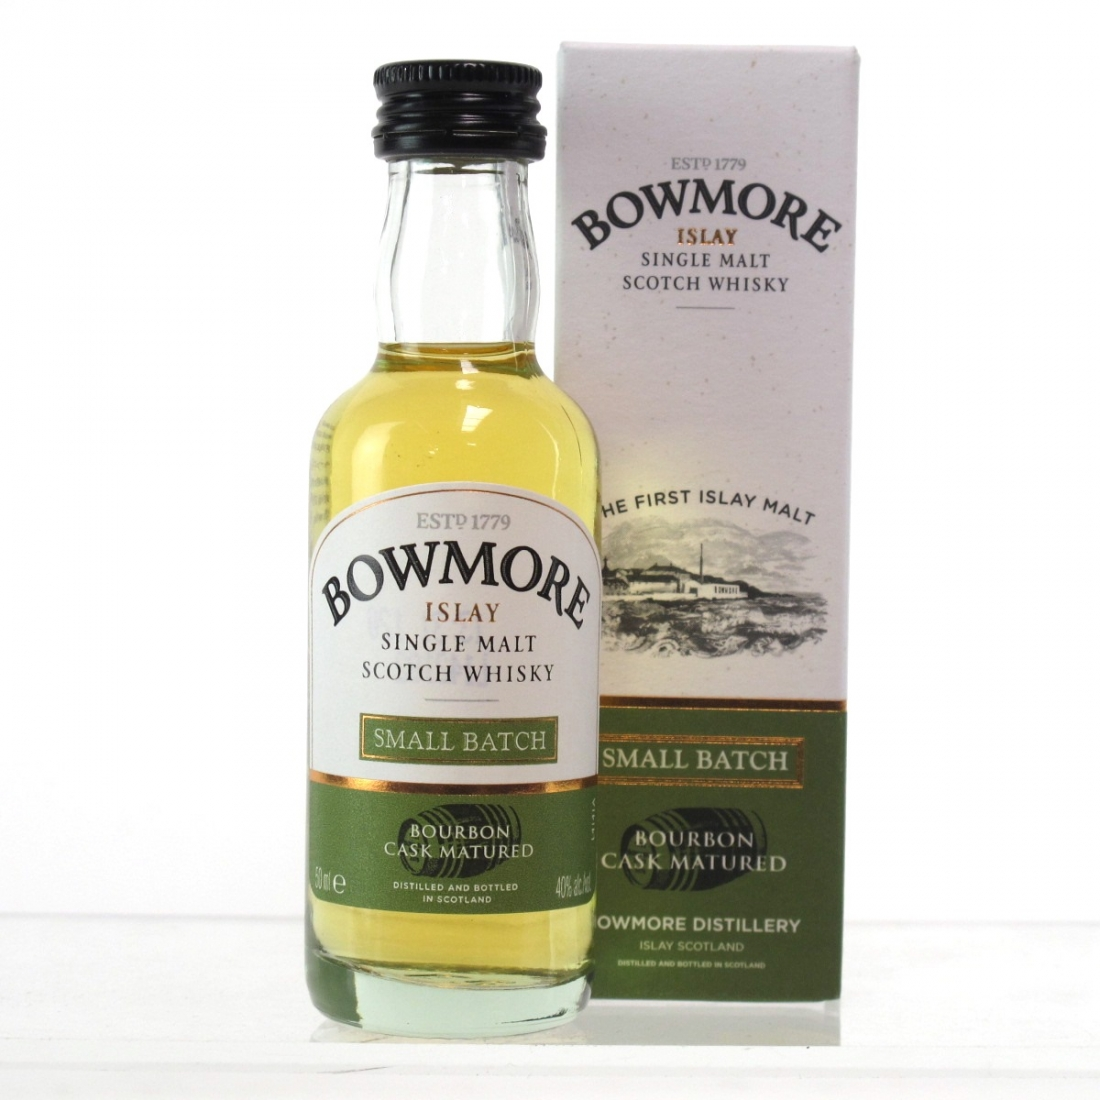 Bowmore Small Batch Miniature 5cl